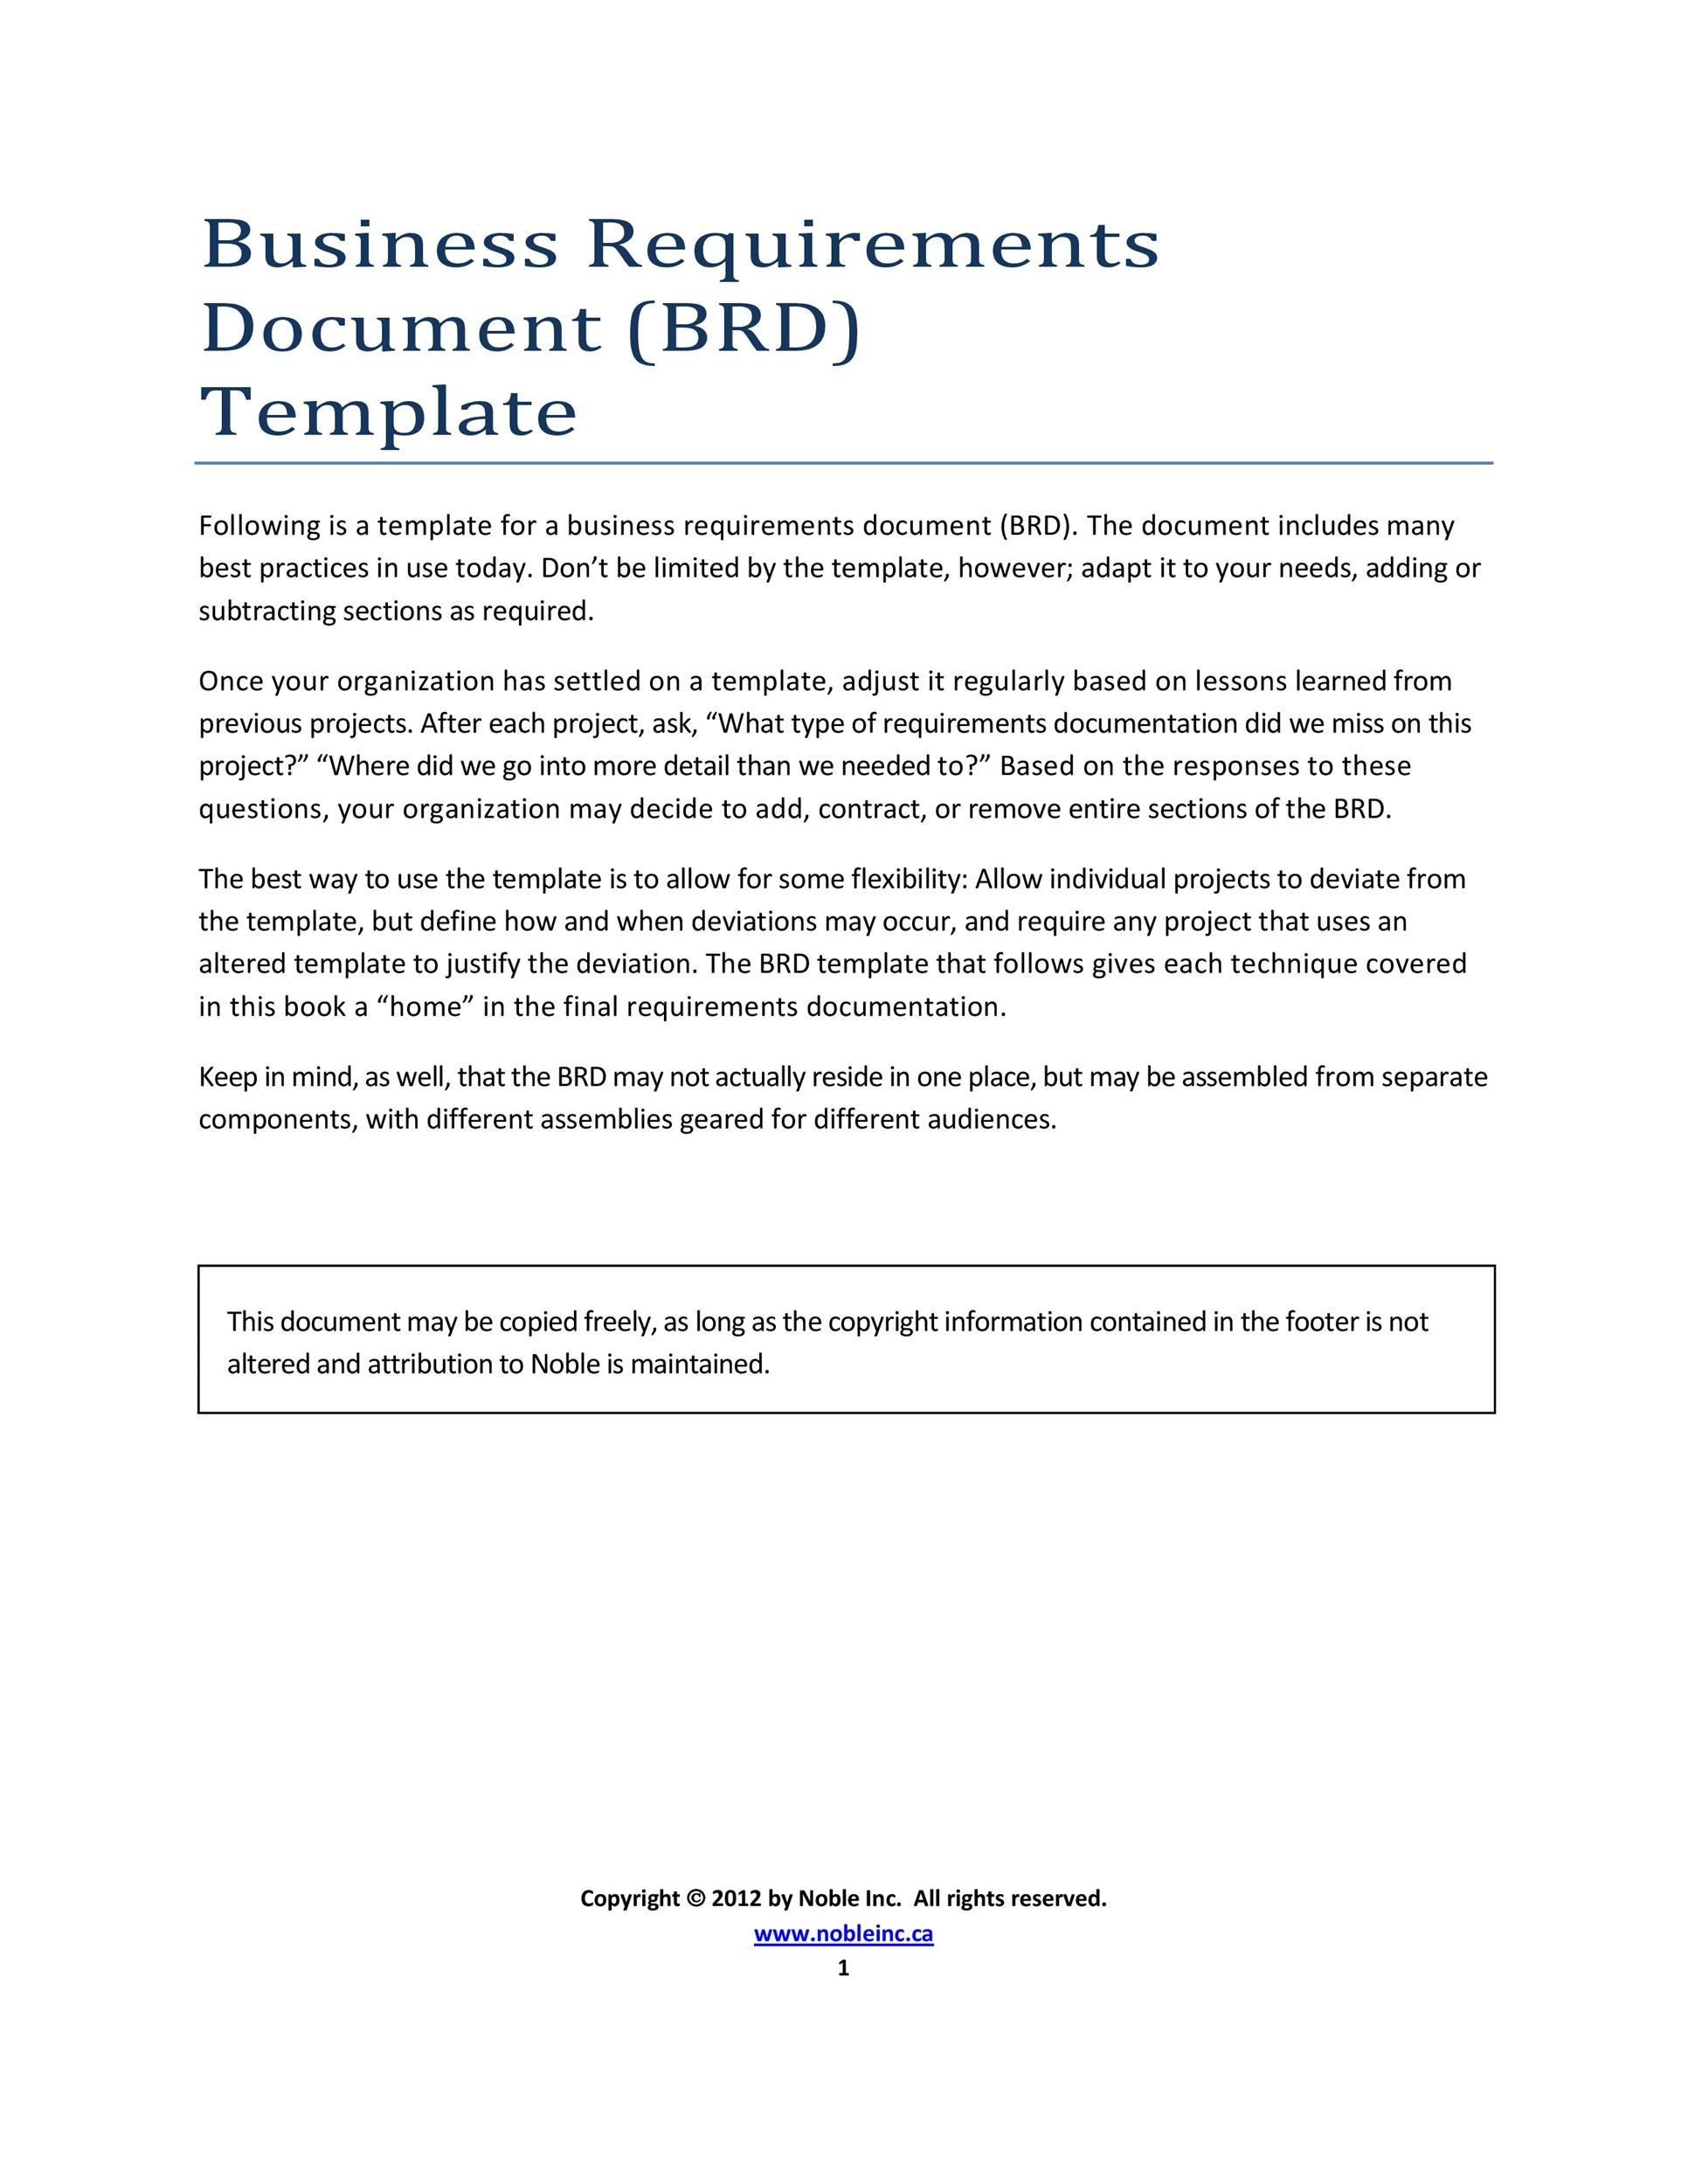 Free business requirements document template 22